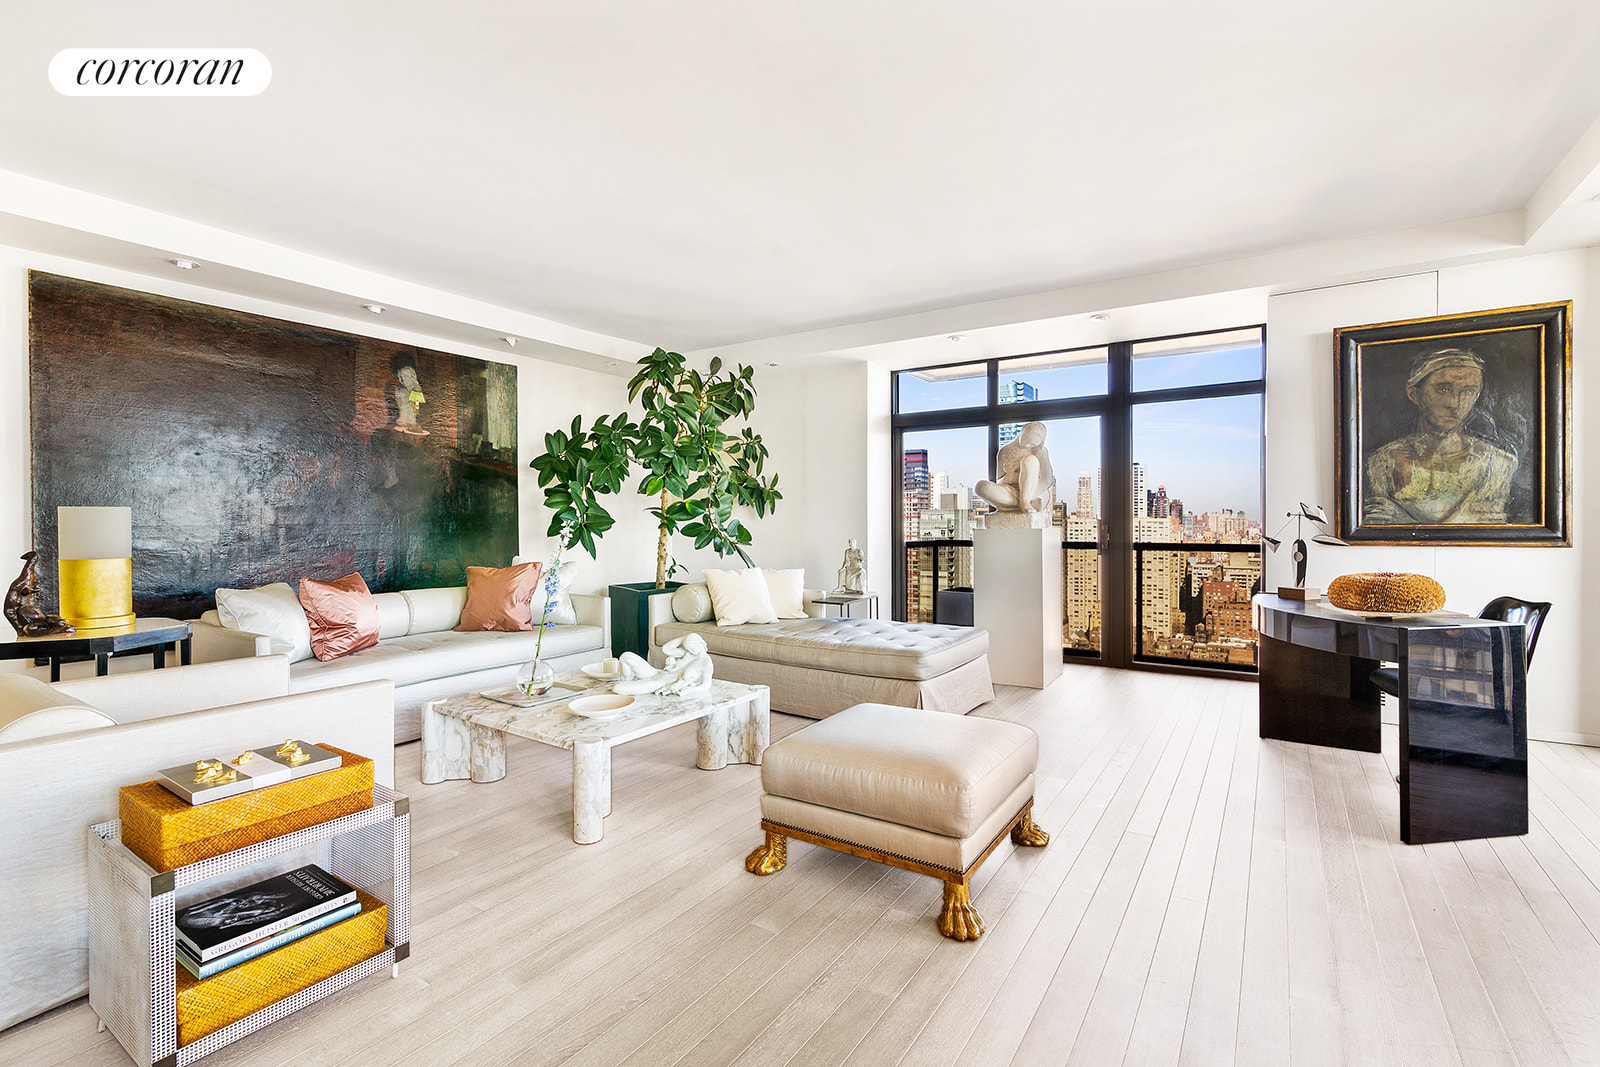 Designer renovated triple mint condition 2 bedroom, 2.5 bathroom corner unit with a private balcony and dramatic city and East River views available at 100 United Nations Plaza, one of Midtown Easts premier white-glove condominiums.   Well-proportioned and thoughtfully designed, conveying a quiet elegance, this mint condition apartment offers 1,539 square feet of interior living space plus 153 square feet of outdoor space and features a split-bedroom layout, windowed kitchen, renovated bathrooms, custom built-ins and recessed lighting throughout. Distinctive finishes include an exposed structural concrete wall, Siberian oak flooring and solid wood doors on pivot hinges for a clean aesthetic.  Passing through the entry foyer, down a short hallway and to the left is the welcoming corner living room, bathed in natural light from its floor-to-ceiling windows highlighting iconic skyline views to the north and river views to the east. This generous room allows for comfortable seating as well as separate dining and work areas. Sliding glass doors provide access to the balcony, a custom cabinet conceals media equipment and a wall of built-ins with black accents perfectly echoes the window frames across the room while providing additional storage space. The windowed kitchen boasts textured yet sleek custom cabinetry from leading Italian manufacturer, Valcucine, set in contrast with an exposed concrete wall, granite countertops and a suite of high-end appliances from Gaggenau, Sub-Zero and Miele. The serene master bedroom suite has a wall of north-facing windows, marble-topped custom built-in storage, and three sizeable closets. The renovated en suite bathroom is finished in a warm neutral palette of mosaic tile and marble and has a marble-topped vanity, glass enclosed shower and separate Jacuzzi bathtub. The large second bedroom is located just off the gallery and boasts views directly overlooking the East River from its wall-to-wall windows. Custom outfitted closets and an 